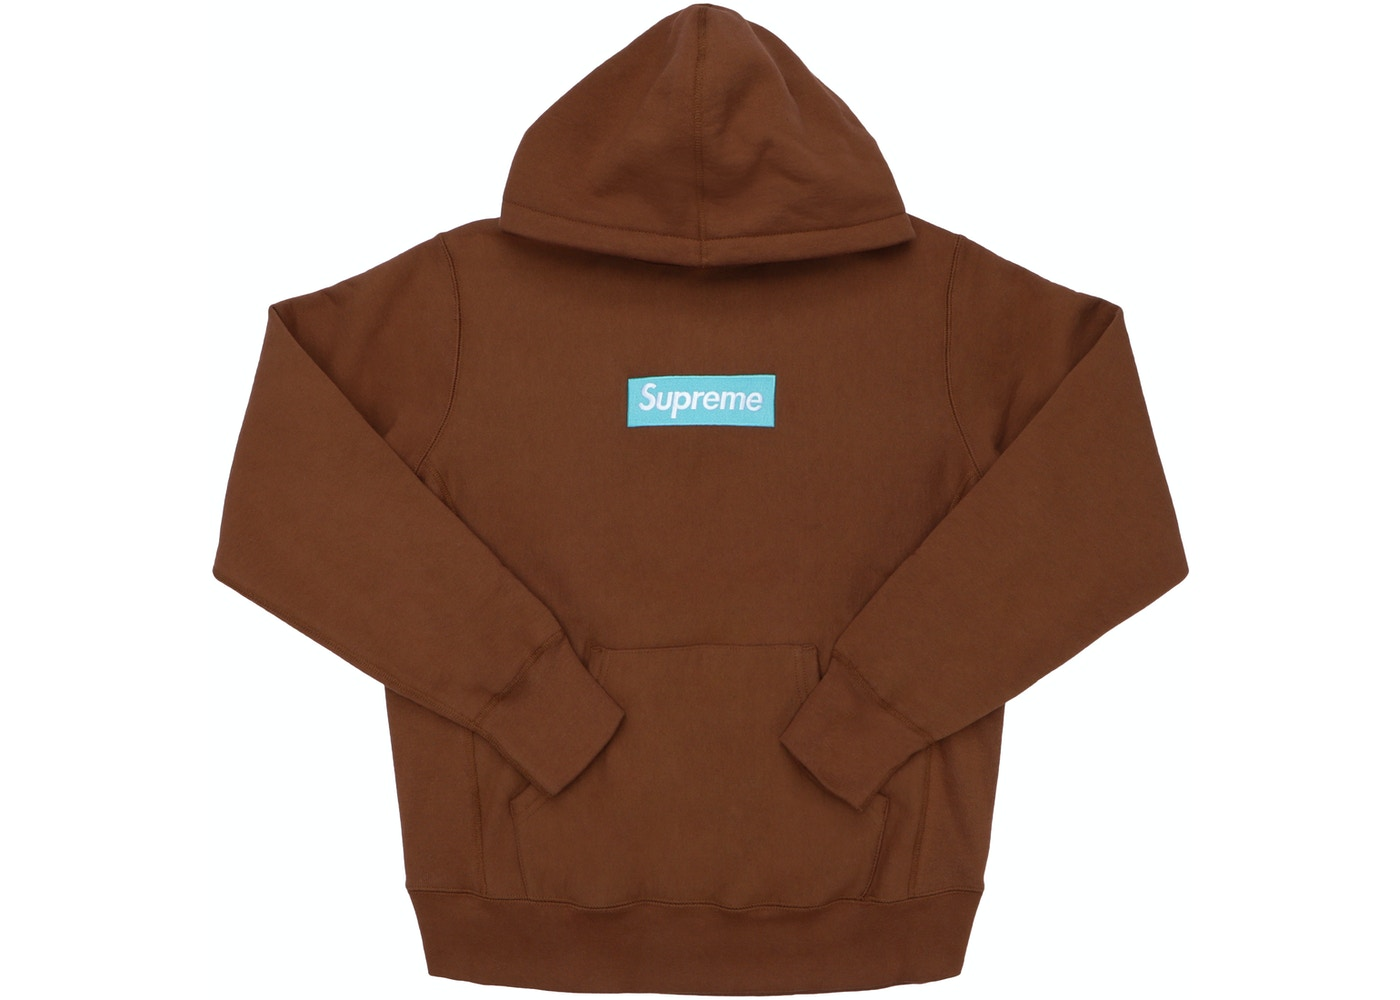 37c701ac Supreme Box Logo Hooded Sweatshirt (FW17) Rust - FW17